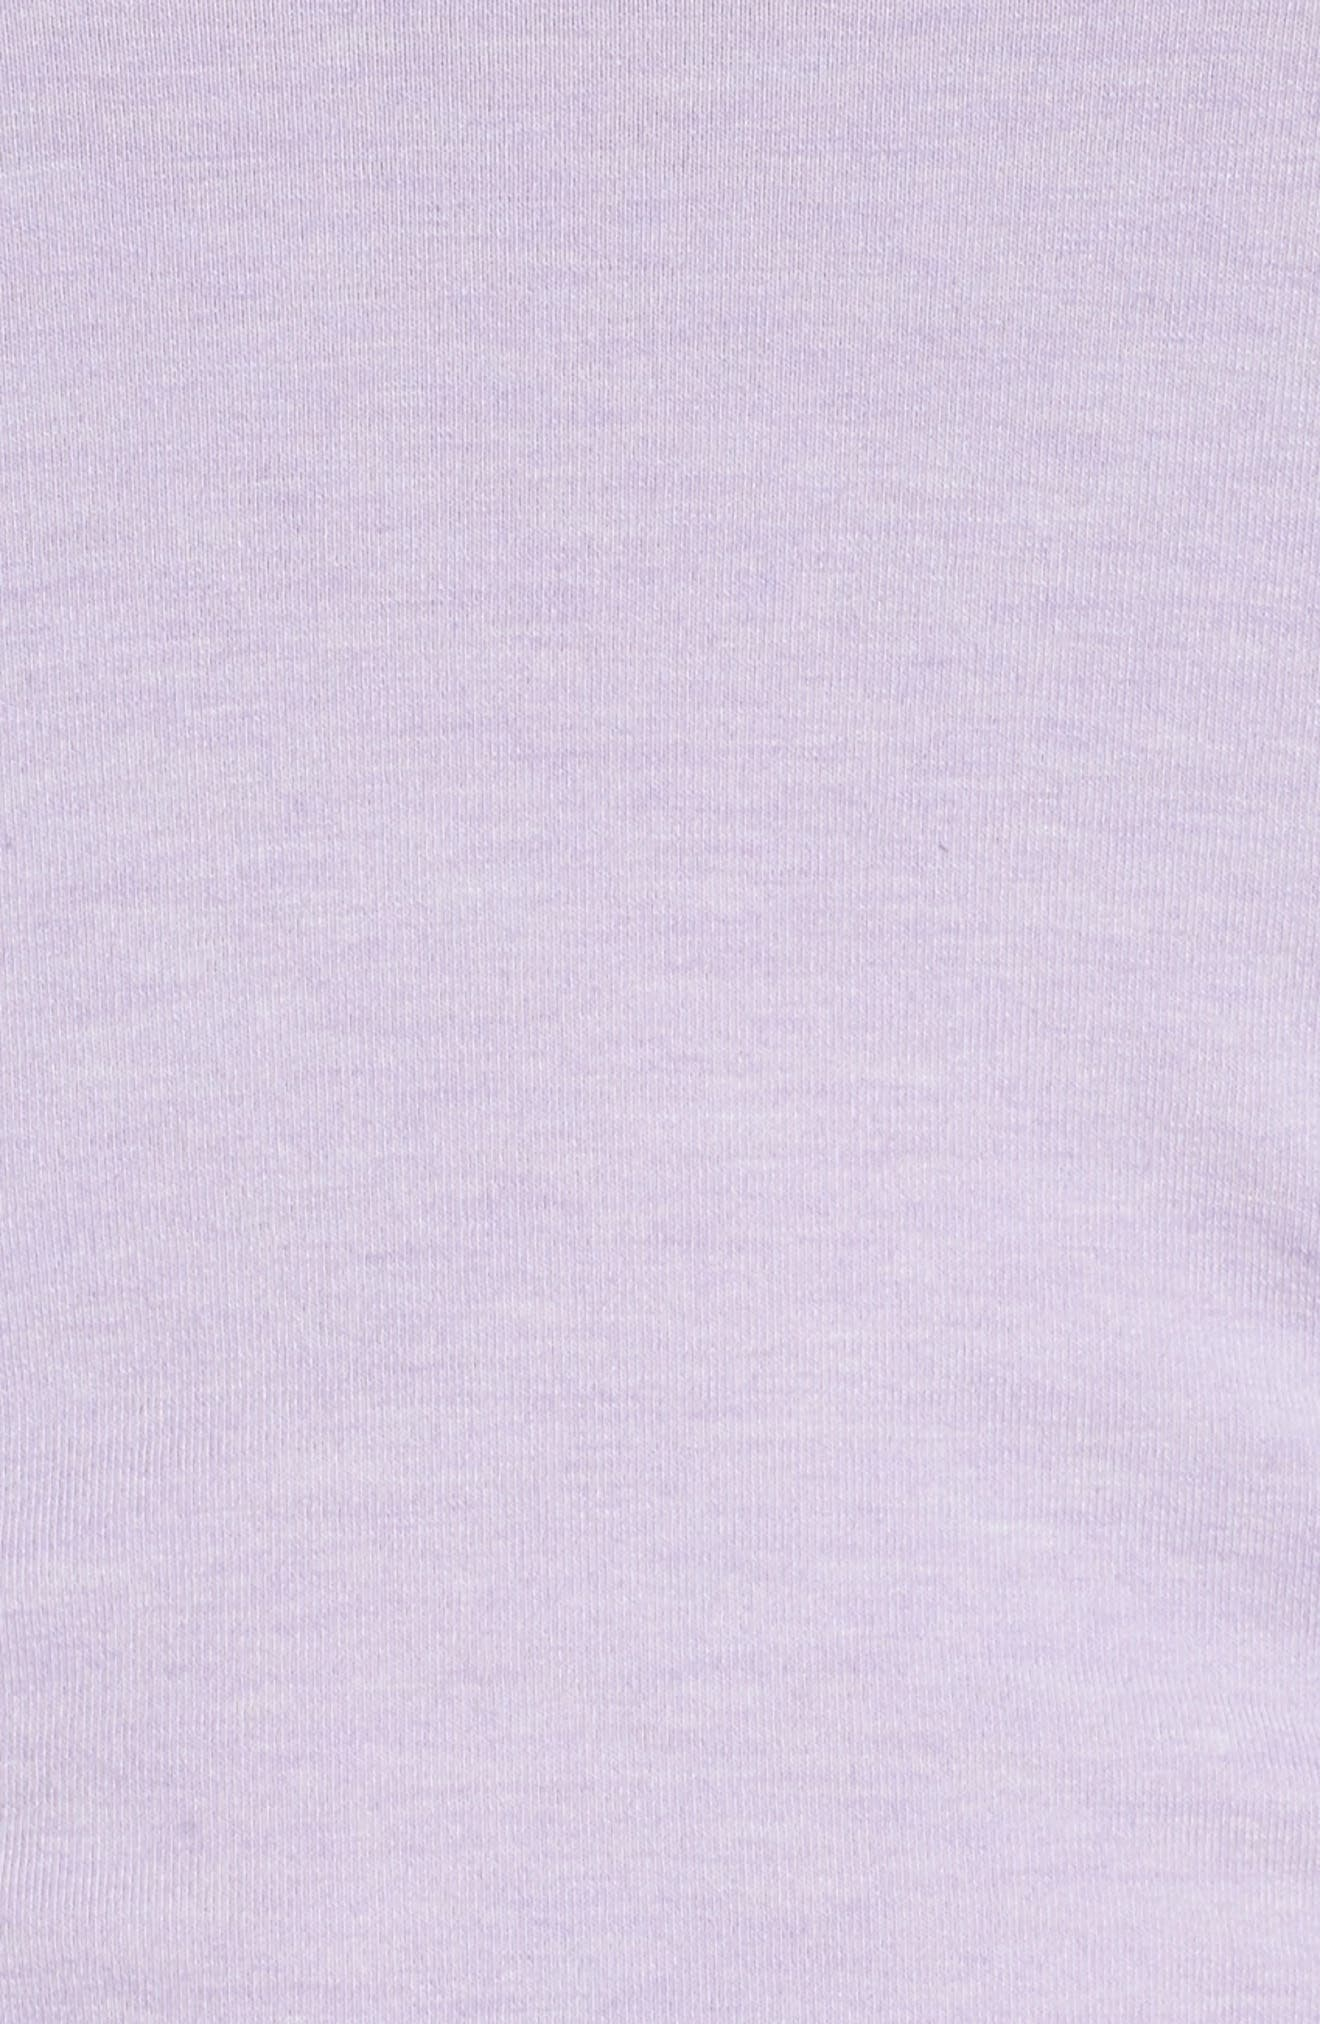 'Z 6' Ruched Tee,                             Alternate thumbnail 72, color,